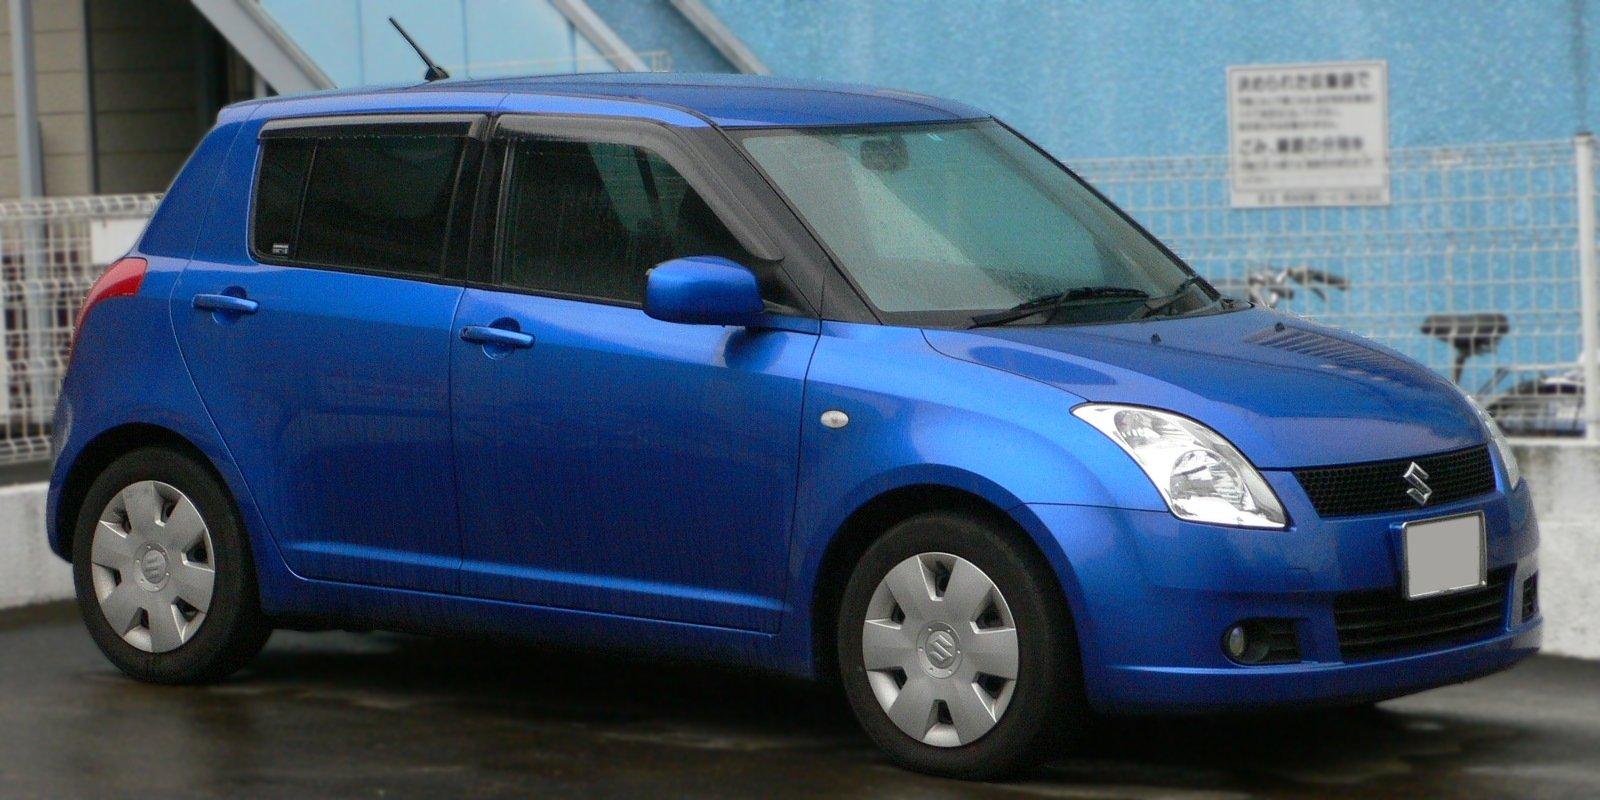 2004_suzuki_swift_23500_1357256266.jpg_1600x800